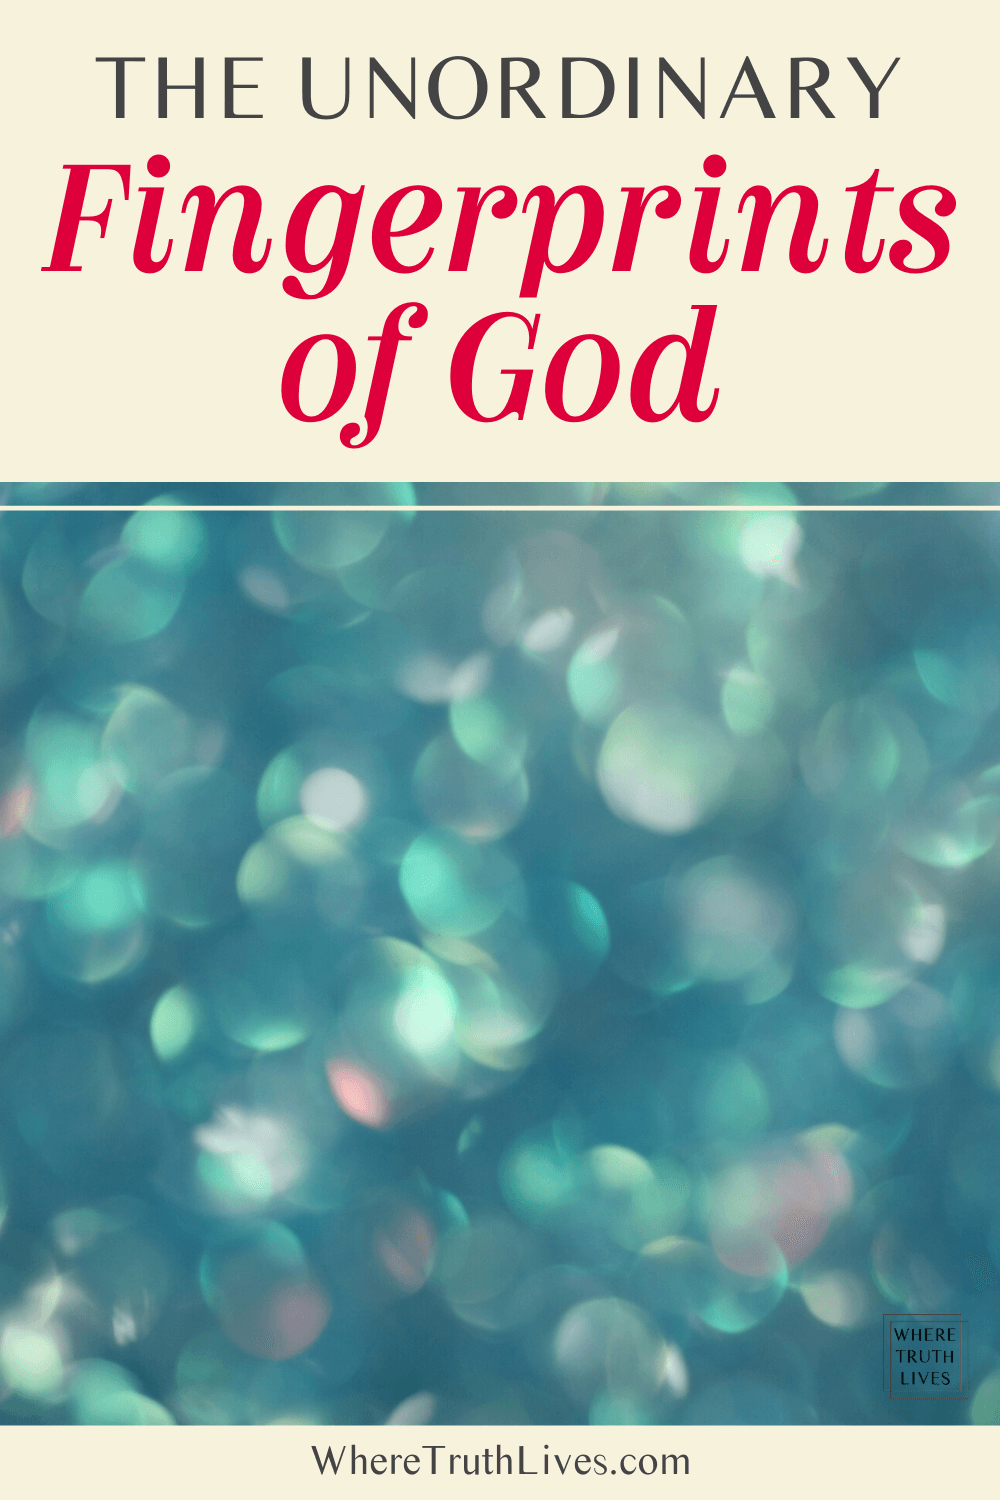 Isn't it strange how ordinary the unordinary fingerprints of God can seem to us? Yet, a closer look reveals that nothing in creation is ordinary after all... | The Unordinary Fingerprints of God | Where Truth Lives .com | Christian blog, devotional